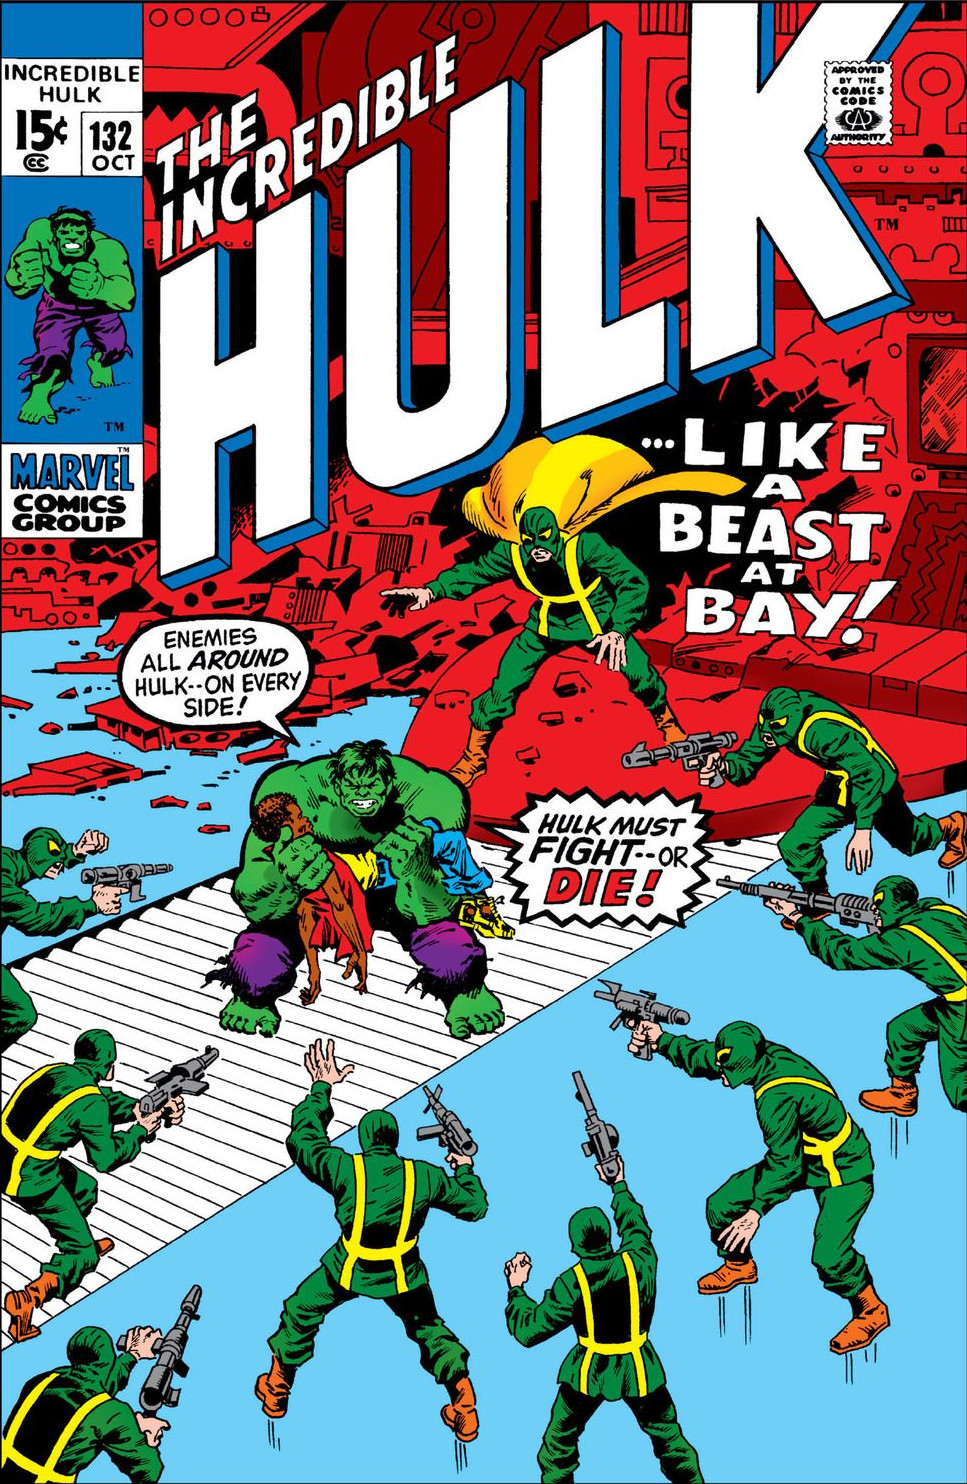 Incredible Hulk Vol 1 132